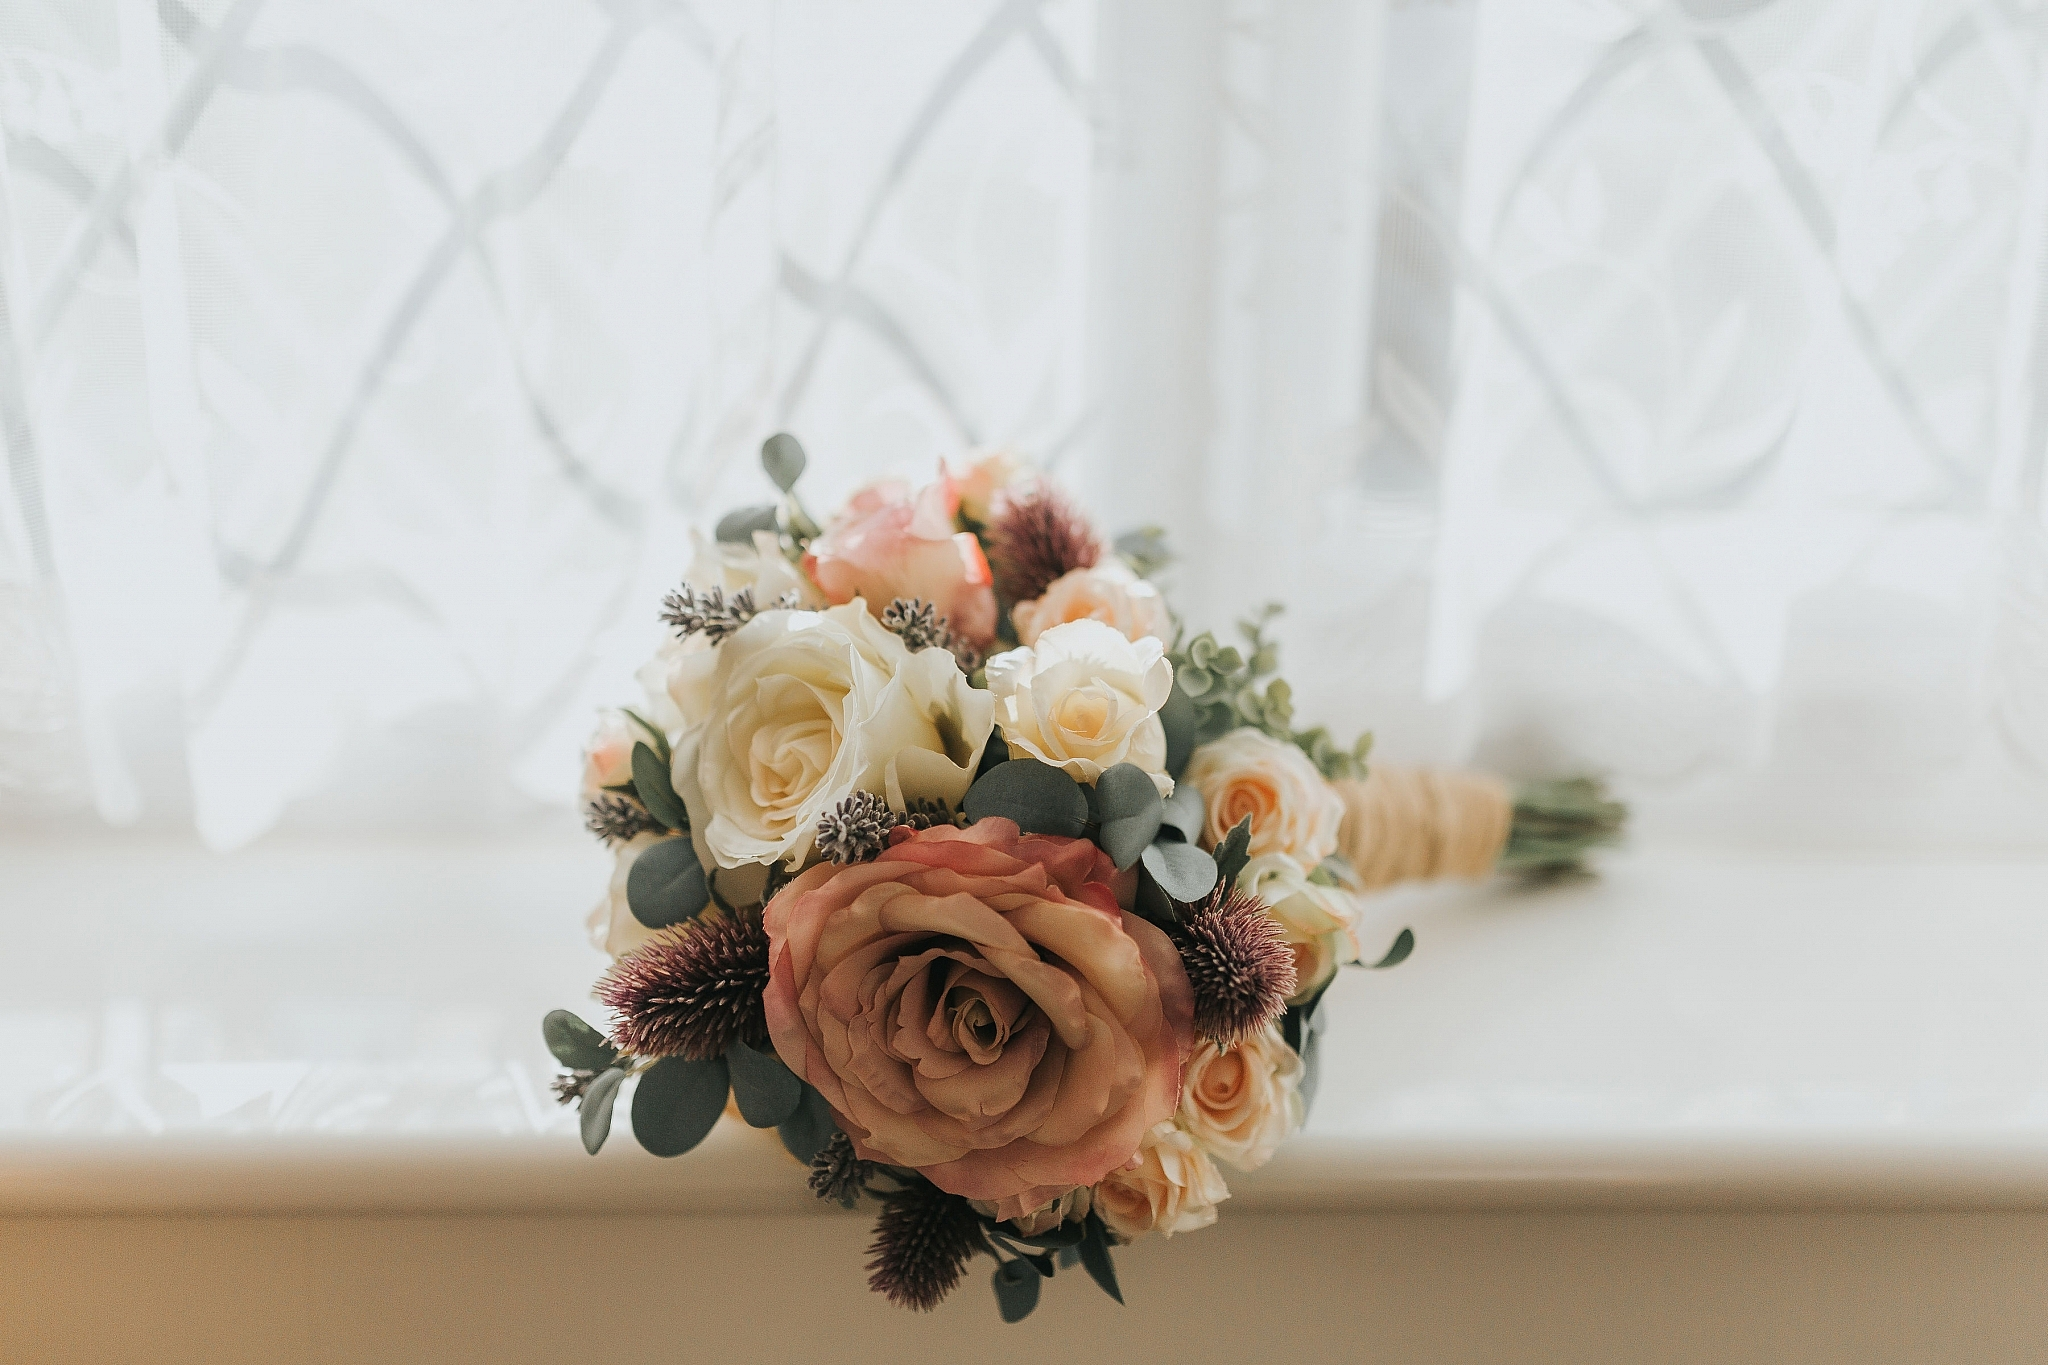 wedding flowers bouquet autumn blush pink